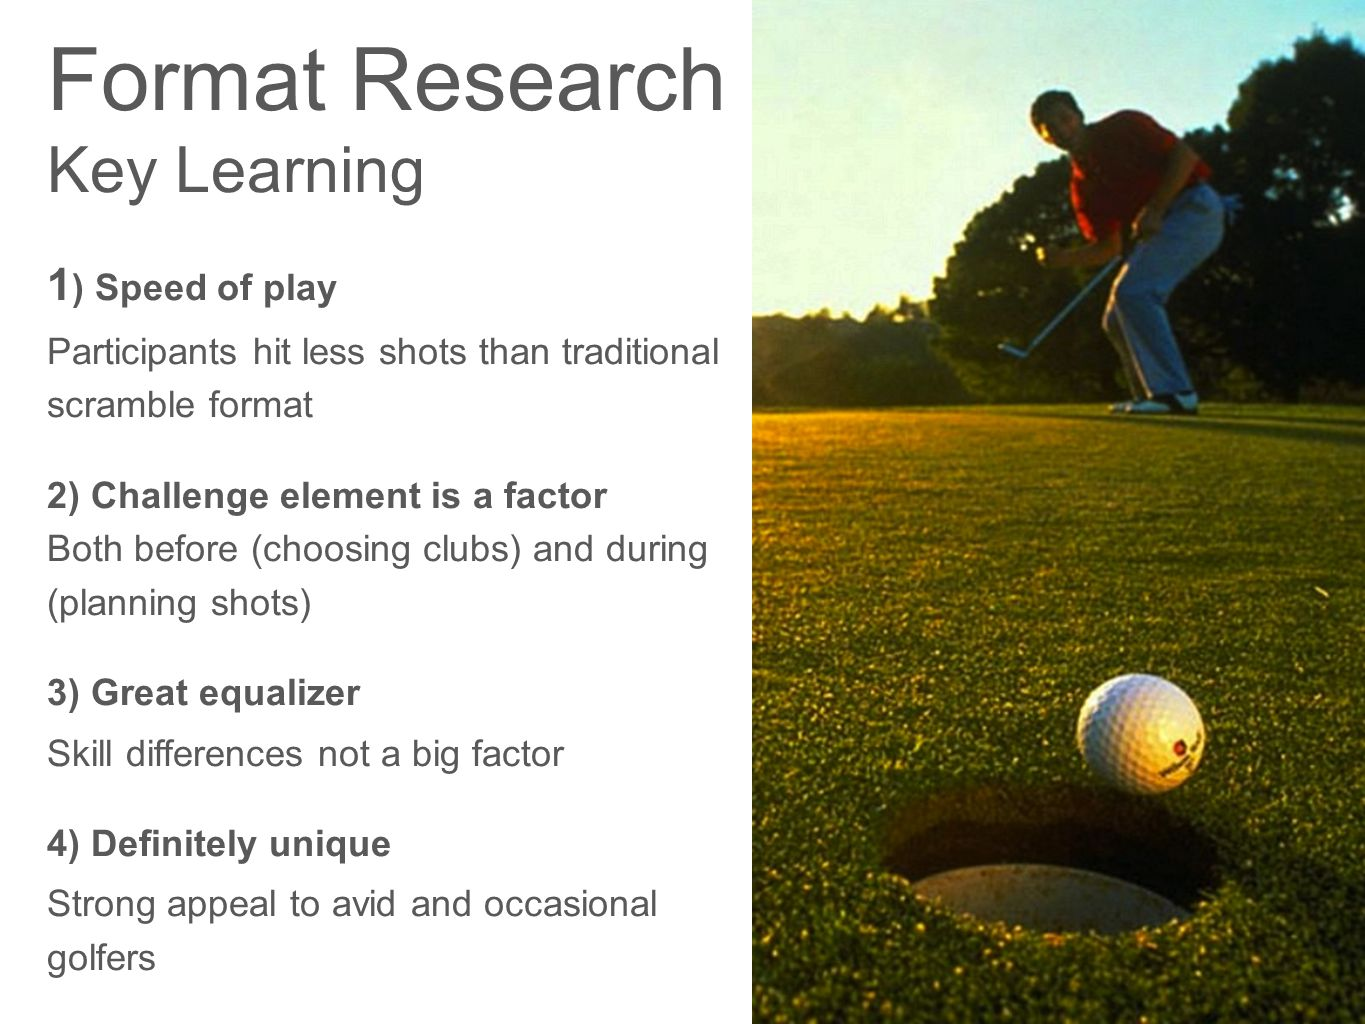 Format Research Key Learning 1 ) Speed of play Participants hit less shots than traditional scramble format 2) Challenge element is a factor Both before (choosing clubs) and during (planning shots) 3) Great equalizer Skill differences not a big factor 4) Definitely unique Strong appeal to avid and occasional golfers